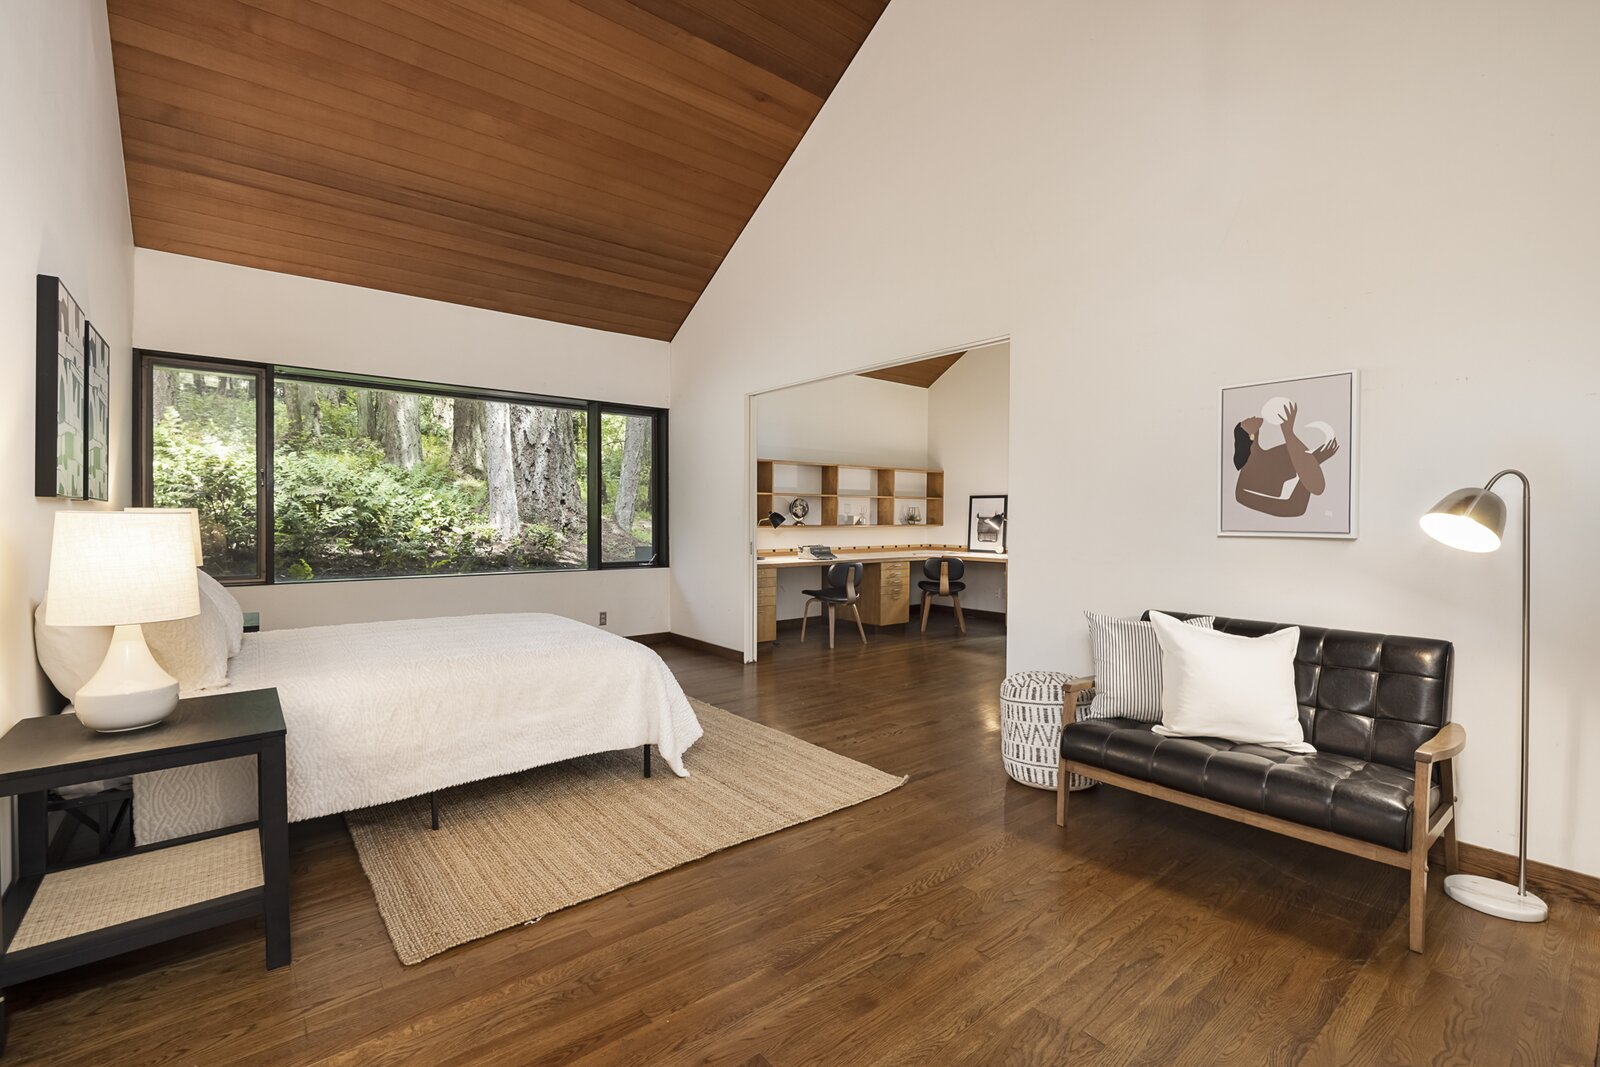 Bedroom in the Mason Residence by Saul Zaik